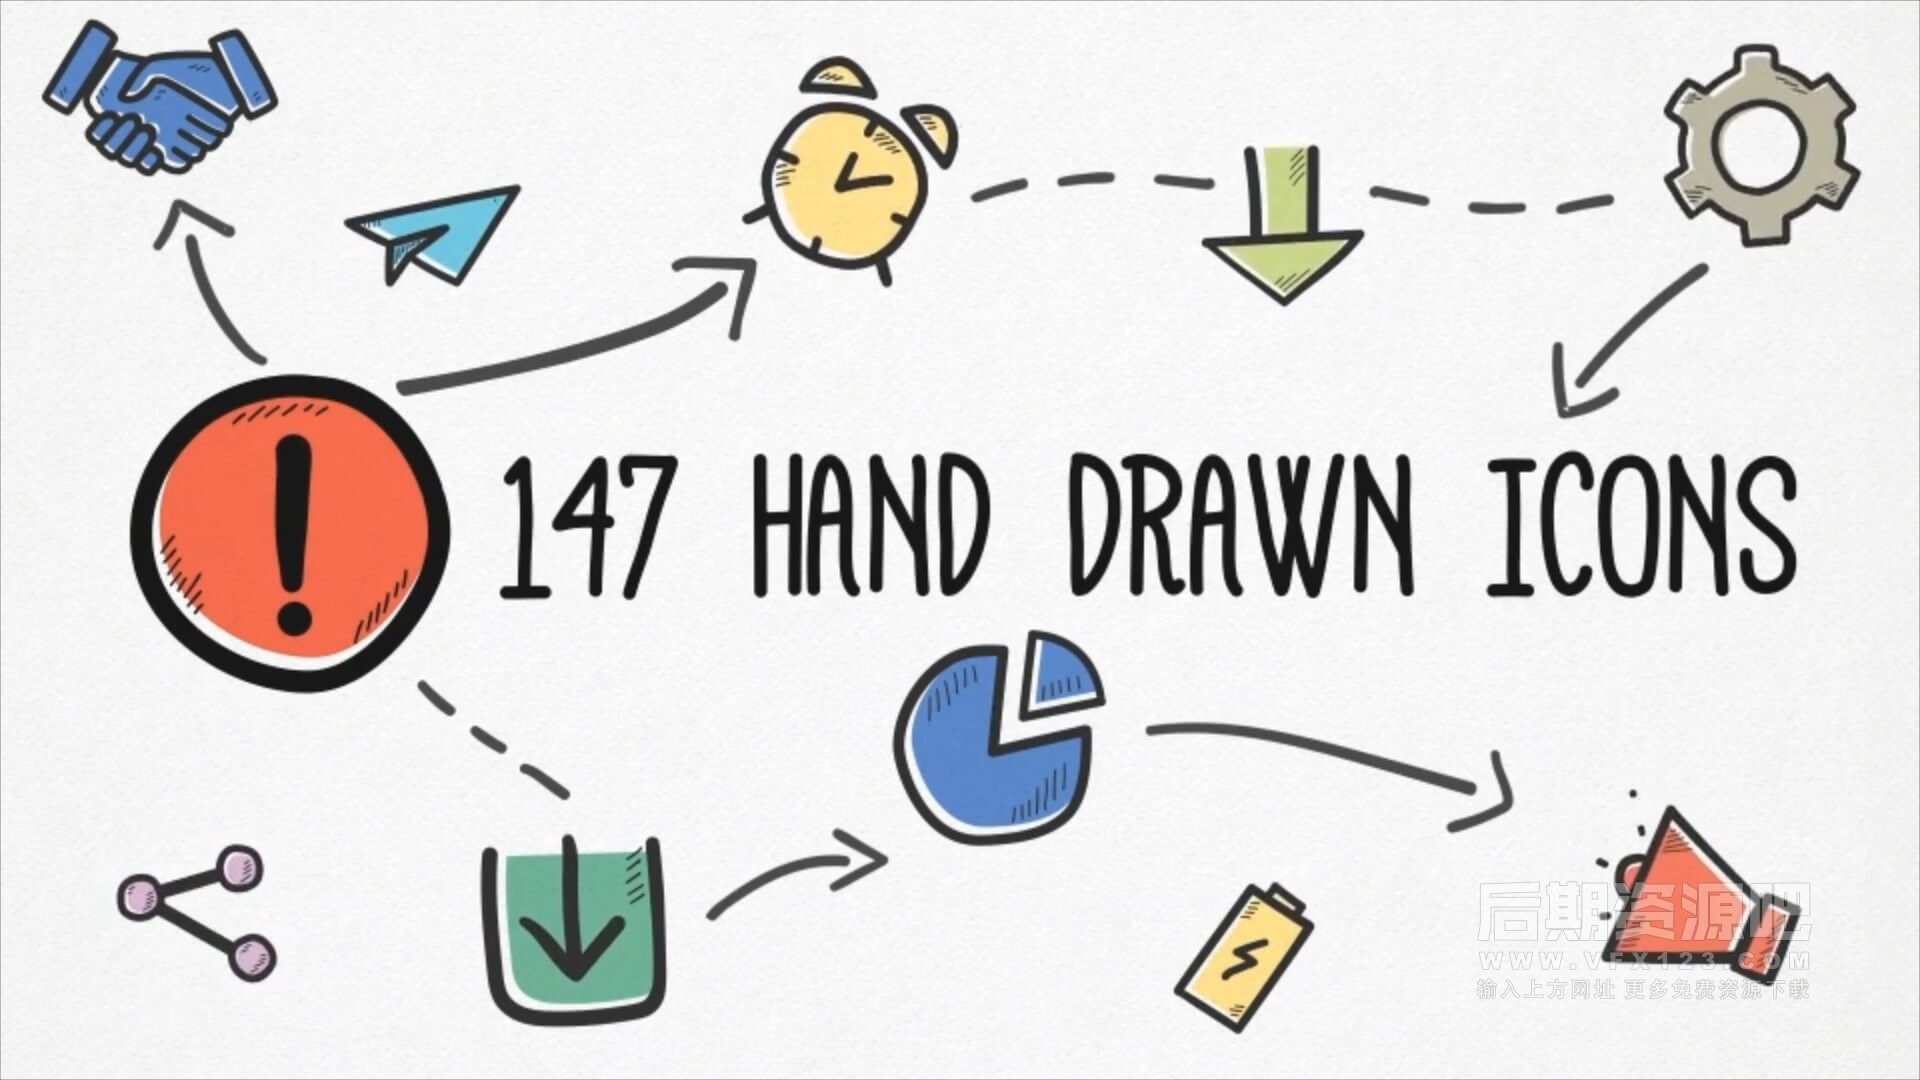 AE模板 147个可爱手绘卡通ICON图标动画 Hand-drawn Icons Pack